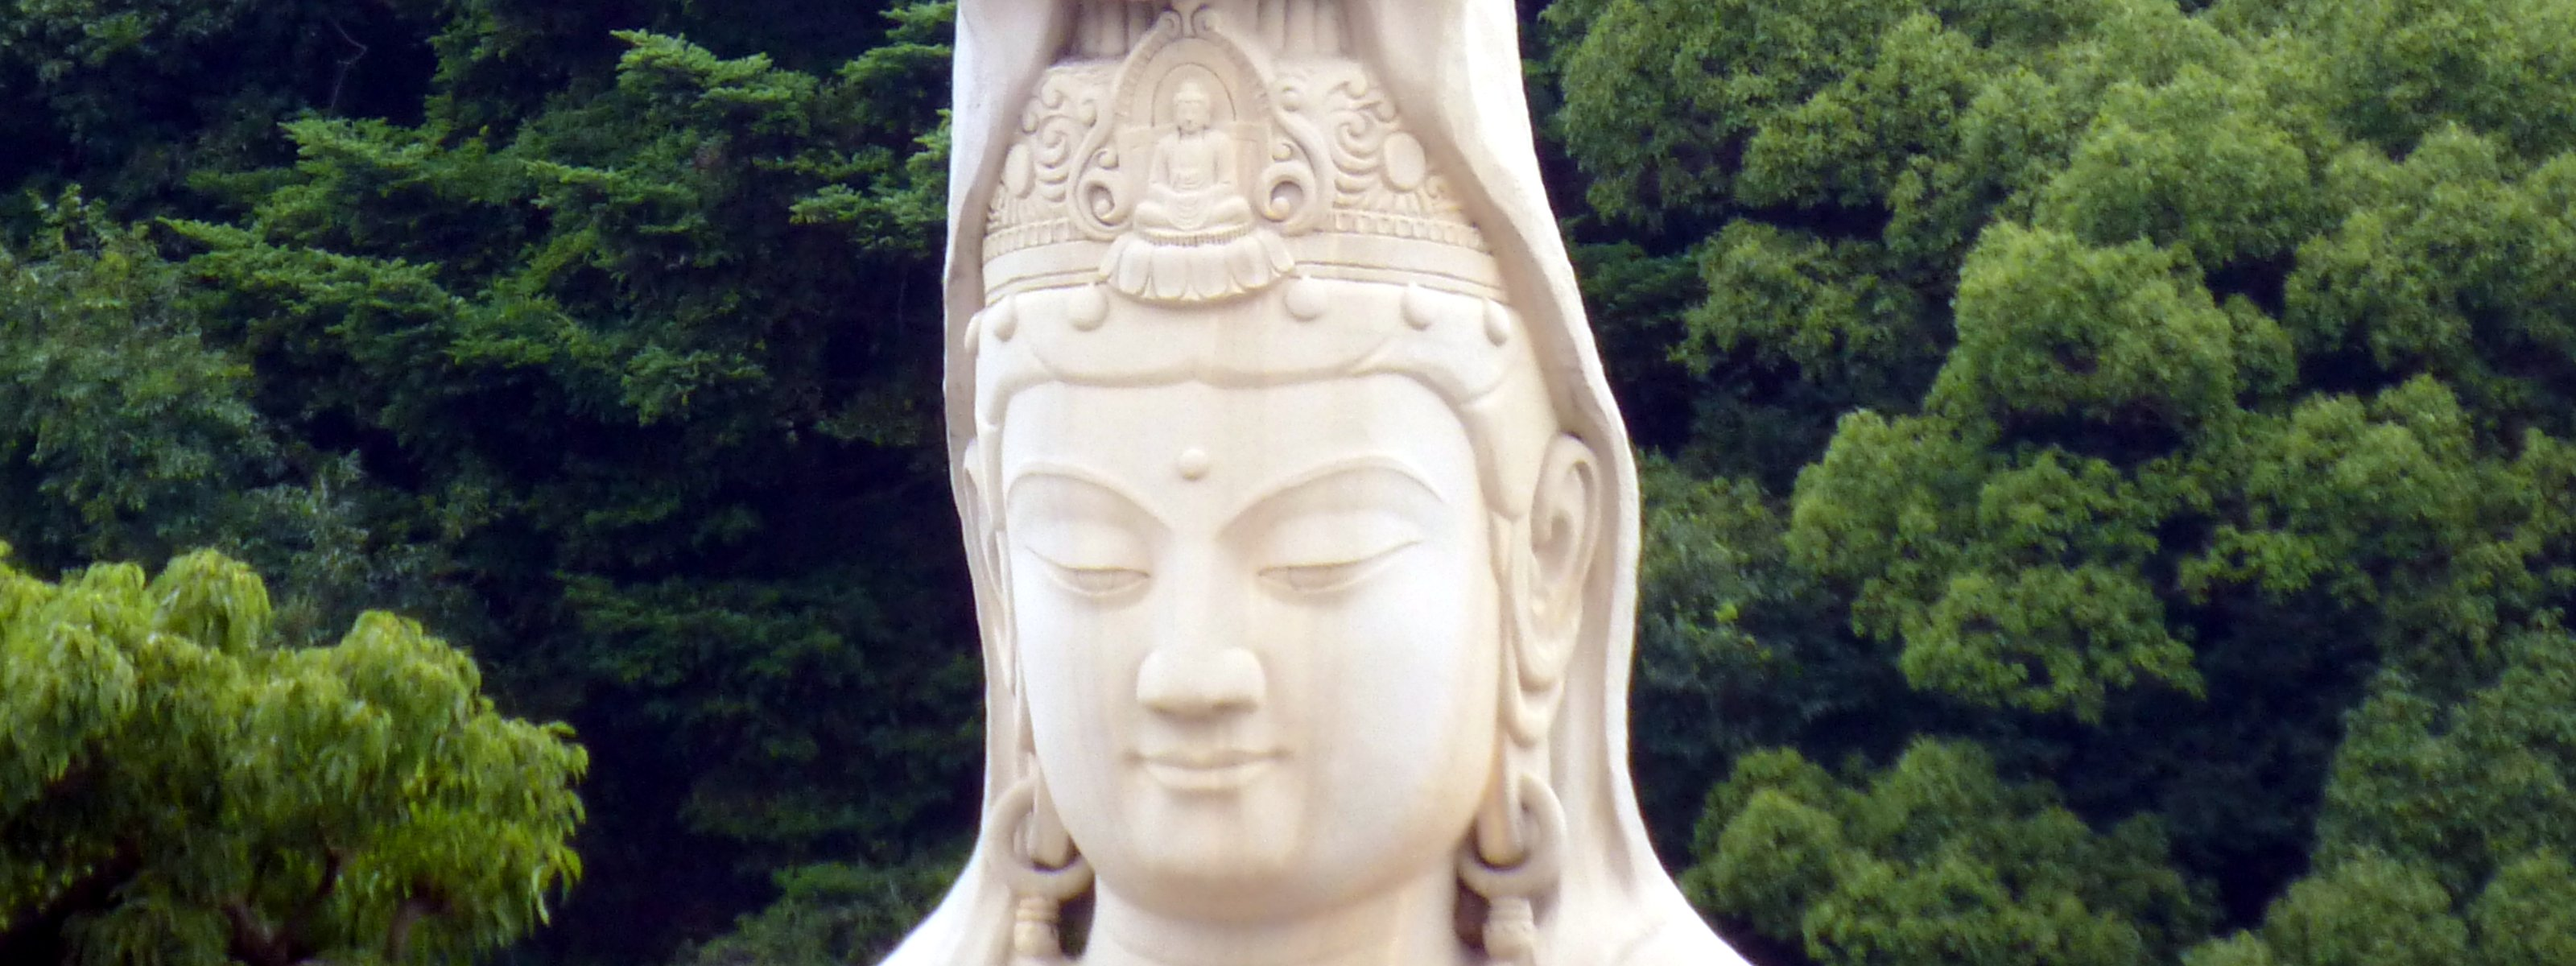 The mystery of the giant Kannon statues